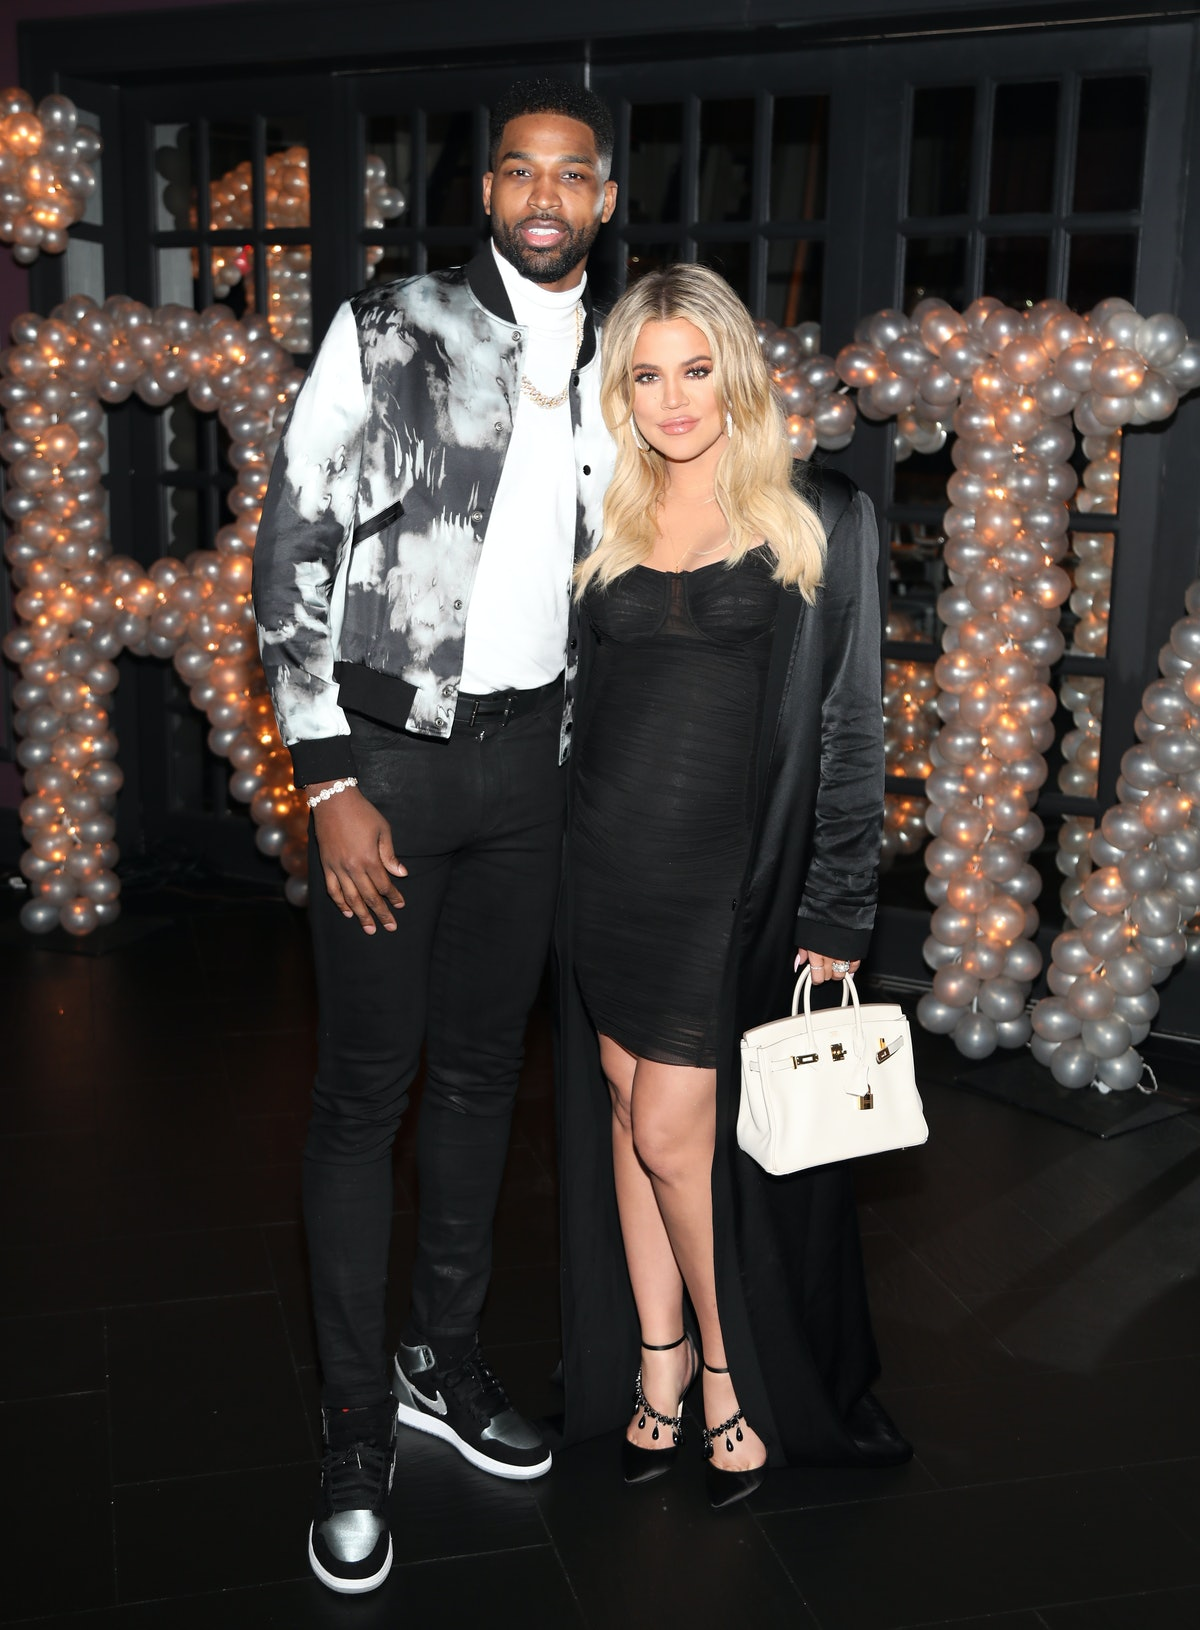 Khloé Kardashian's tweet to a fan about reuniting with Tristan Thompson is clear.